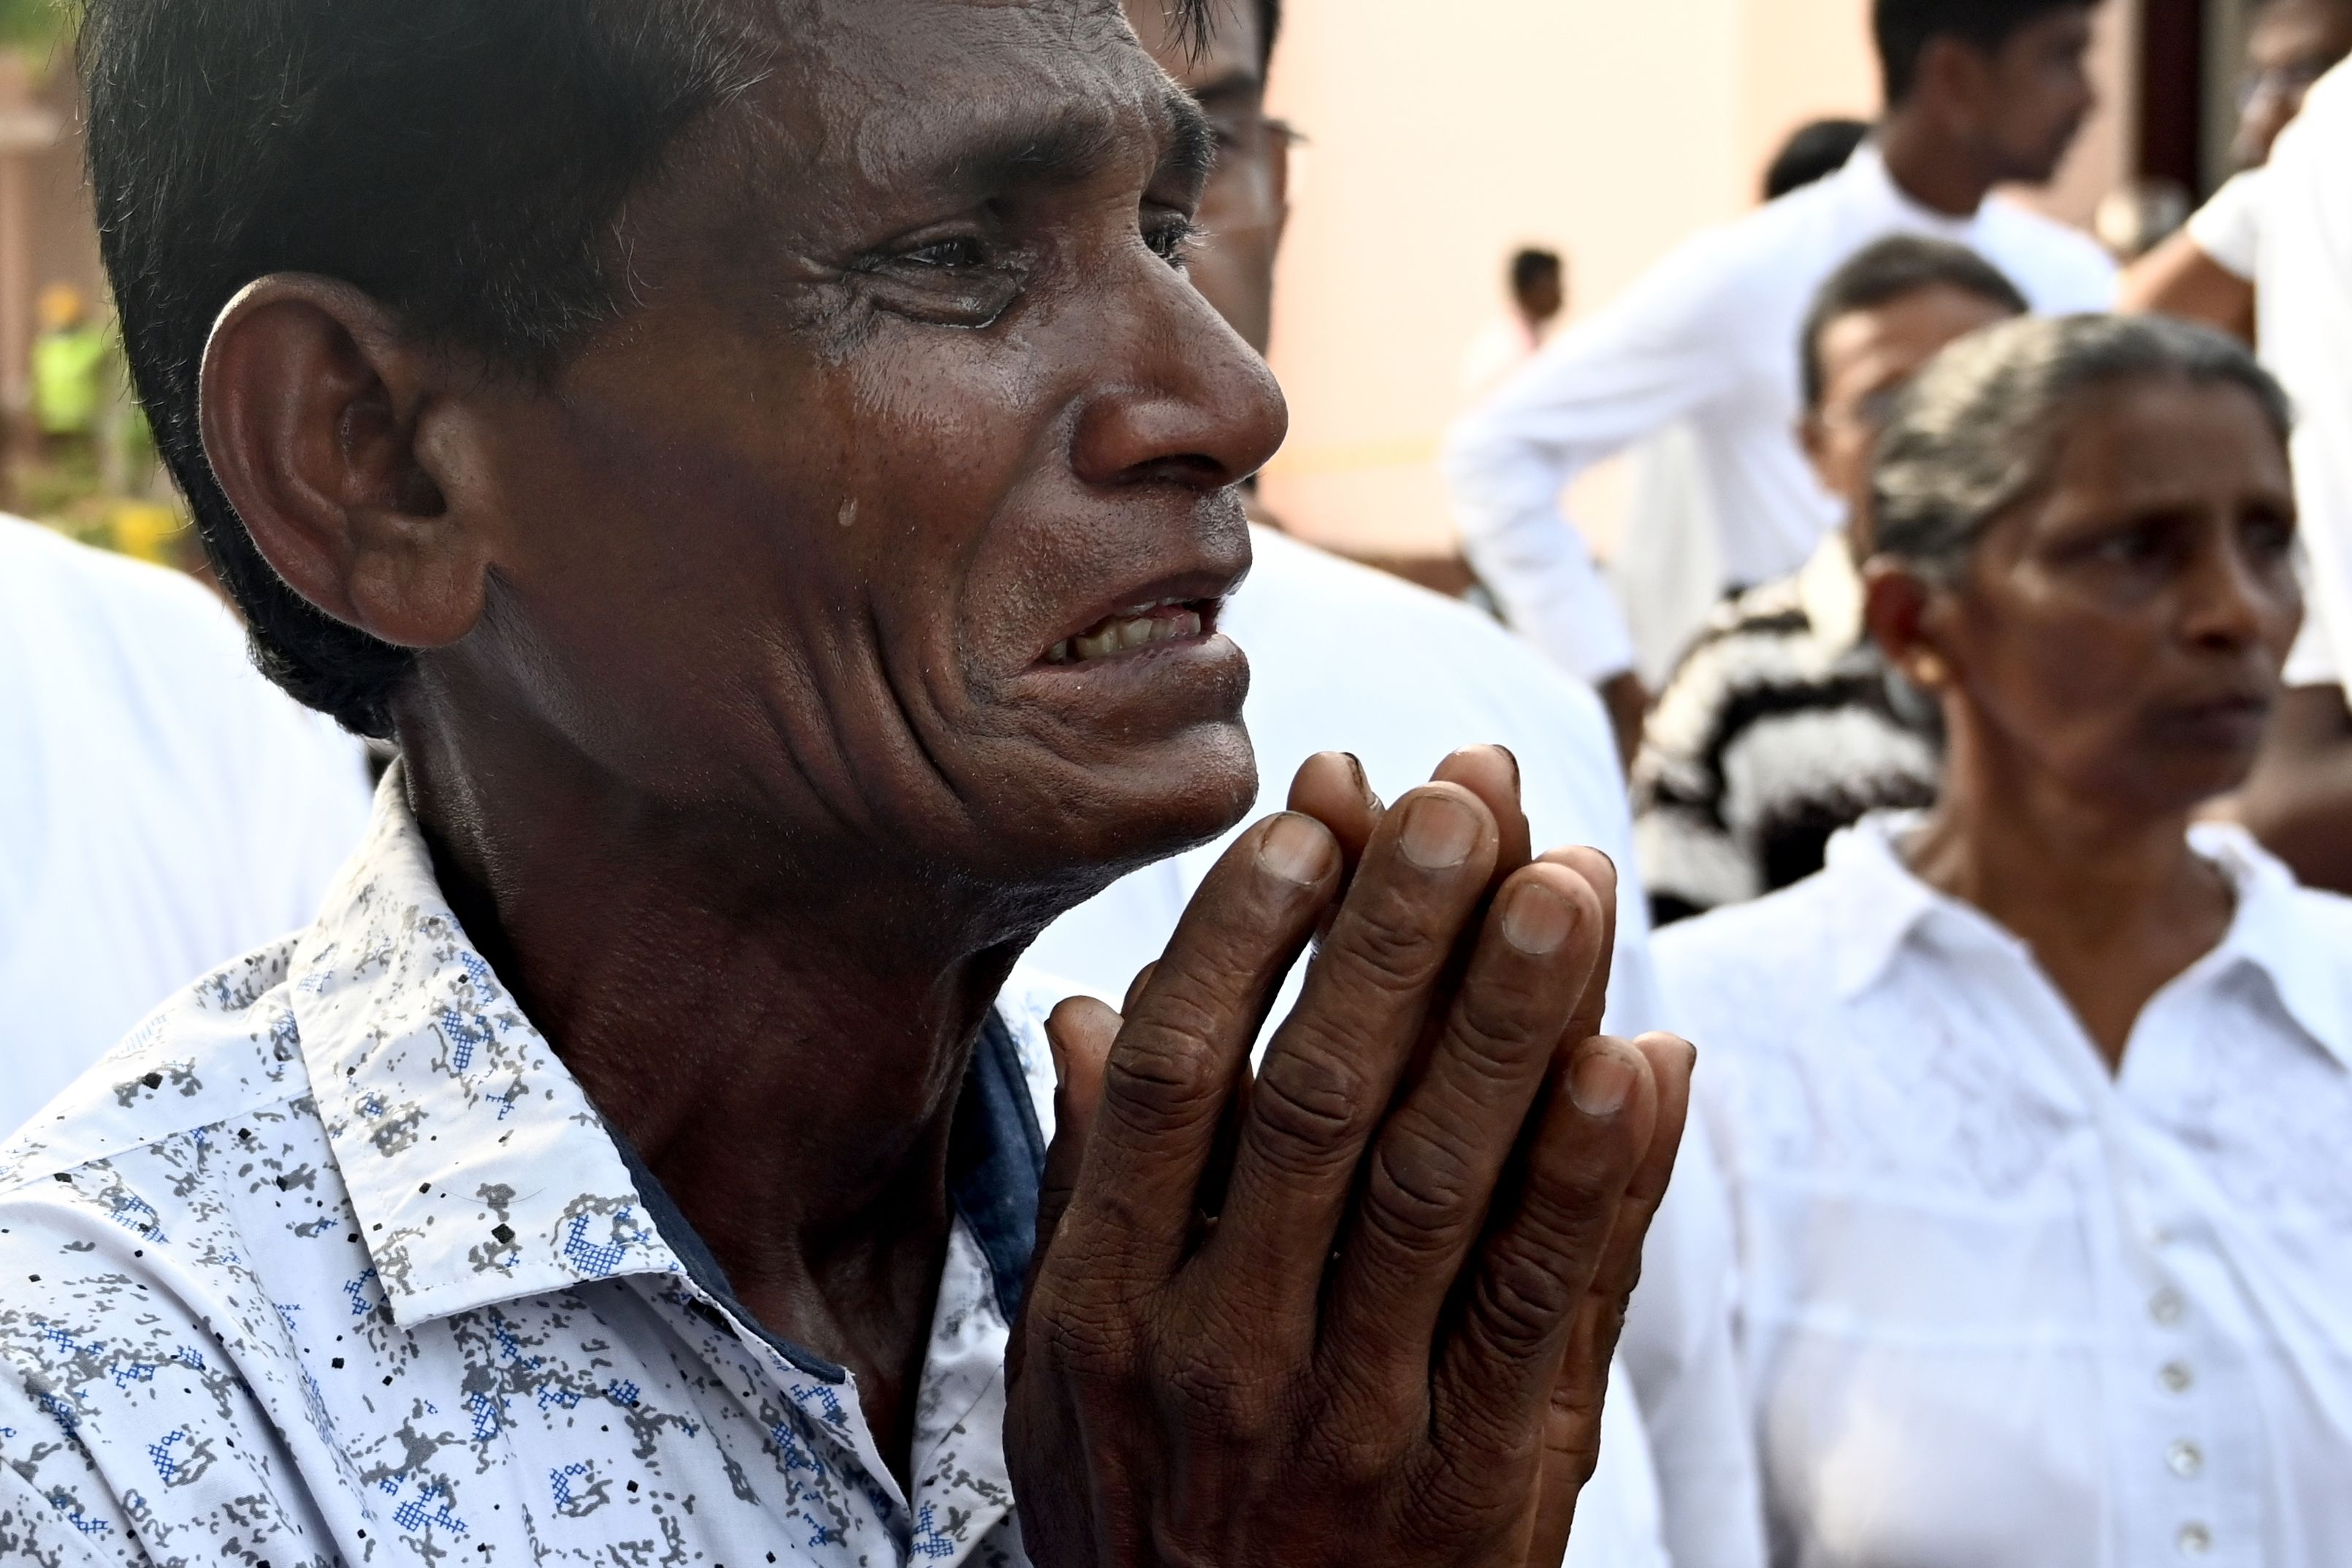 A man cries as he walks behind the coffin of a bomb blast victim after a funeral service at St Sebastian's Church in Negombo.